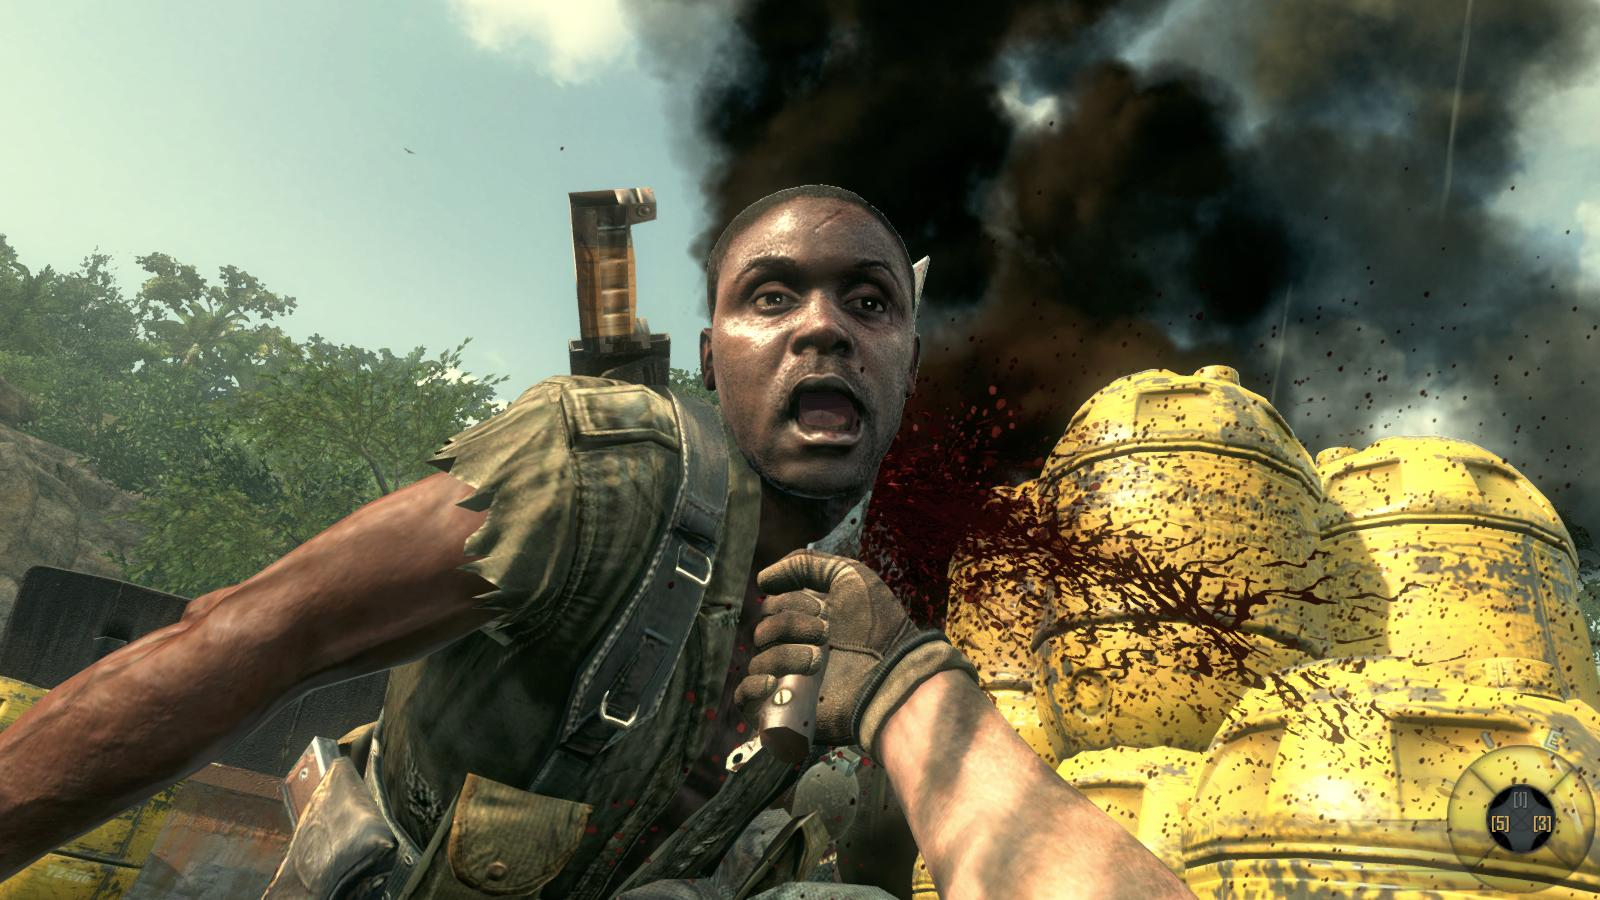 Strong sexual content far cry 3